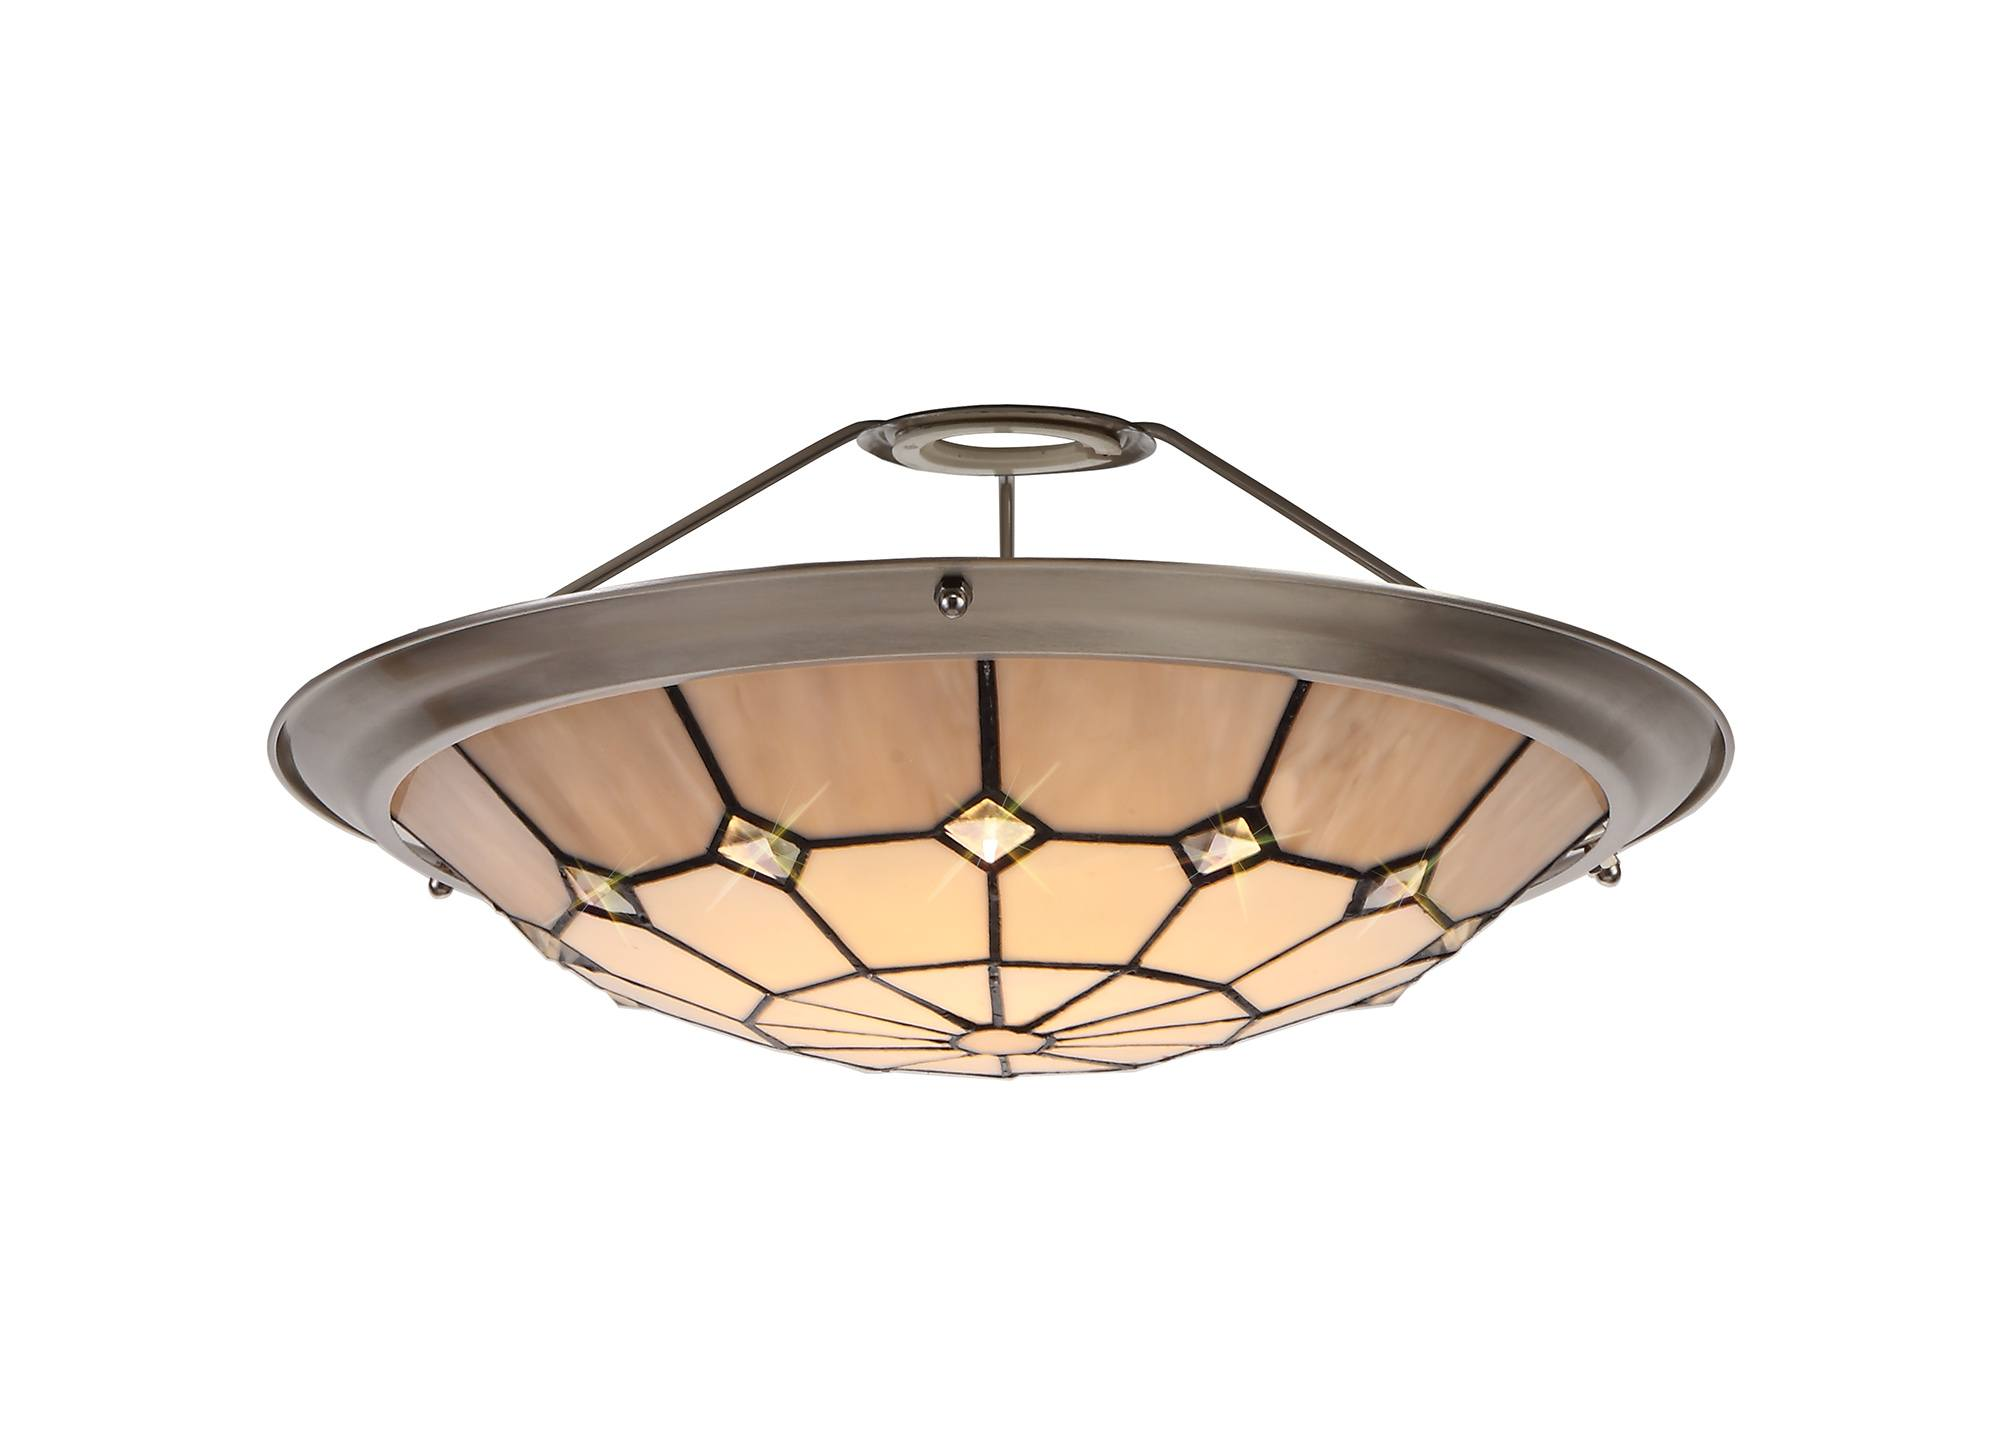 Tiff Tiffany 35cm Non Electric Uplighter Shade Cream Grey Crystal Centre Satin Nickel Brass Trim Lux Lighting